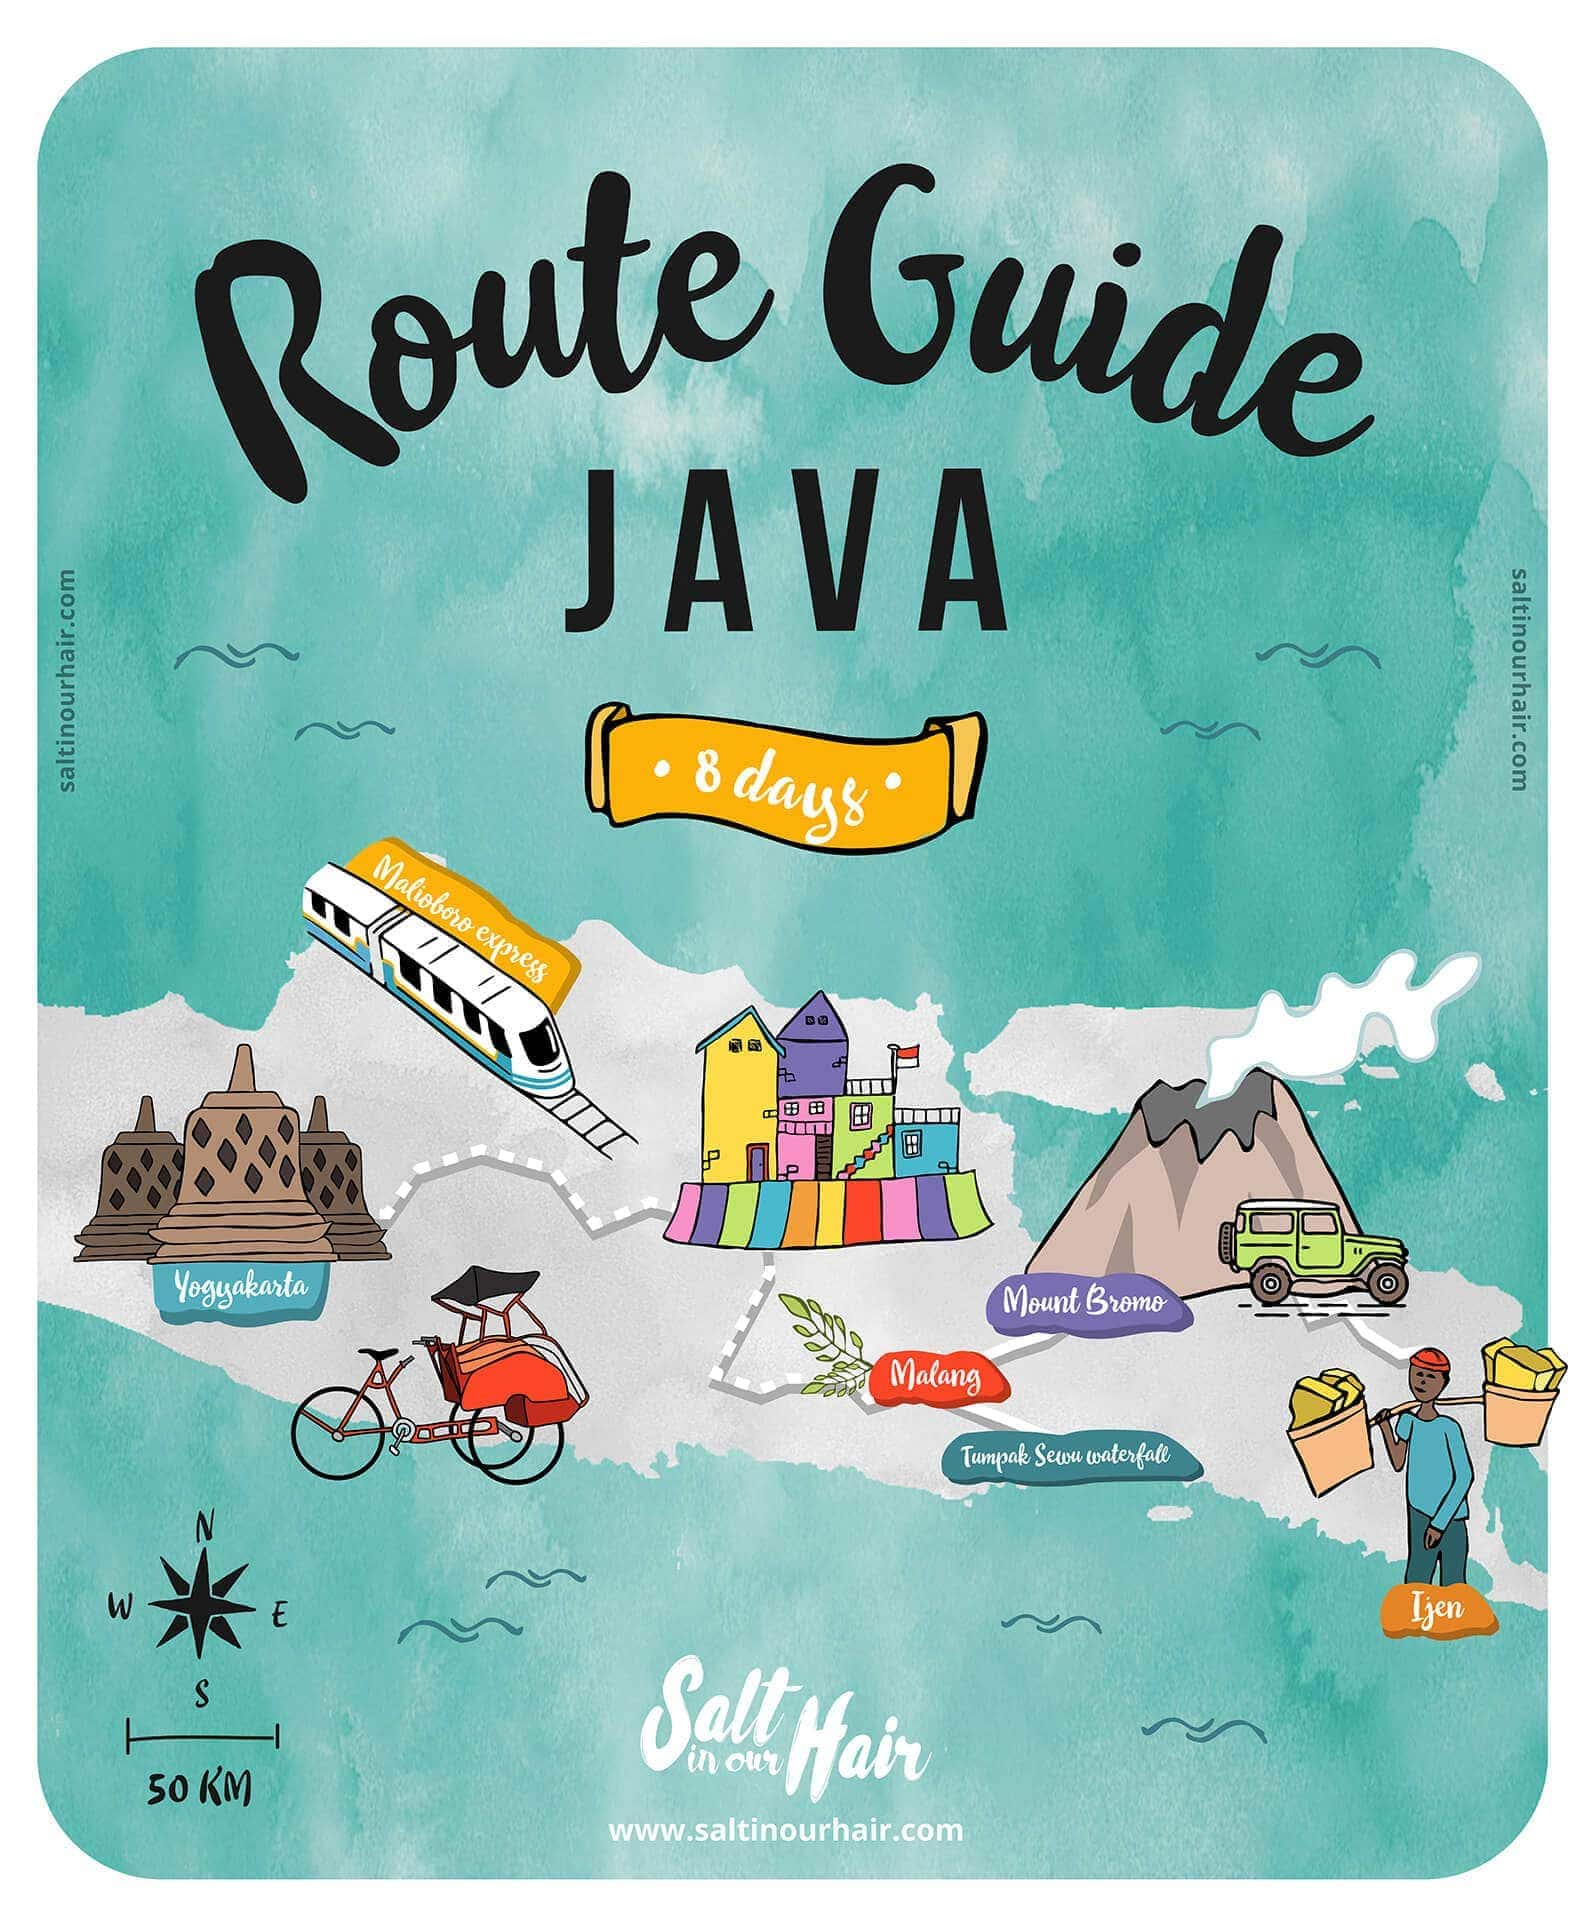 central east java route guide map